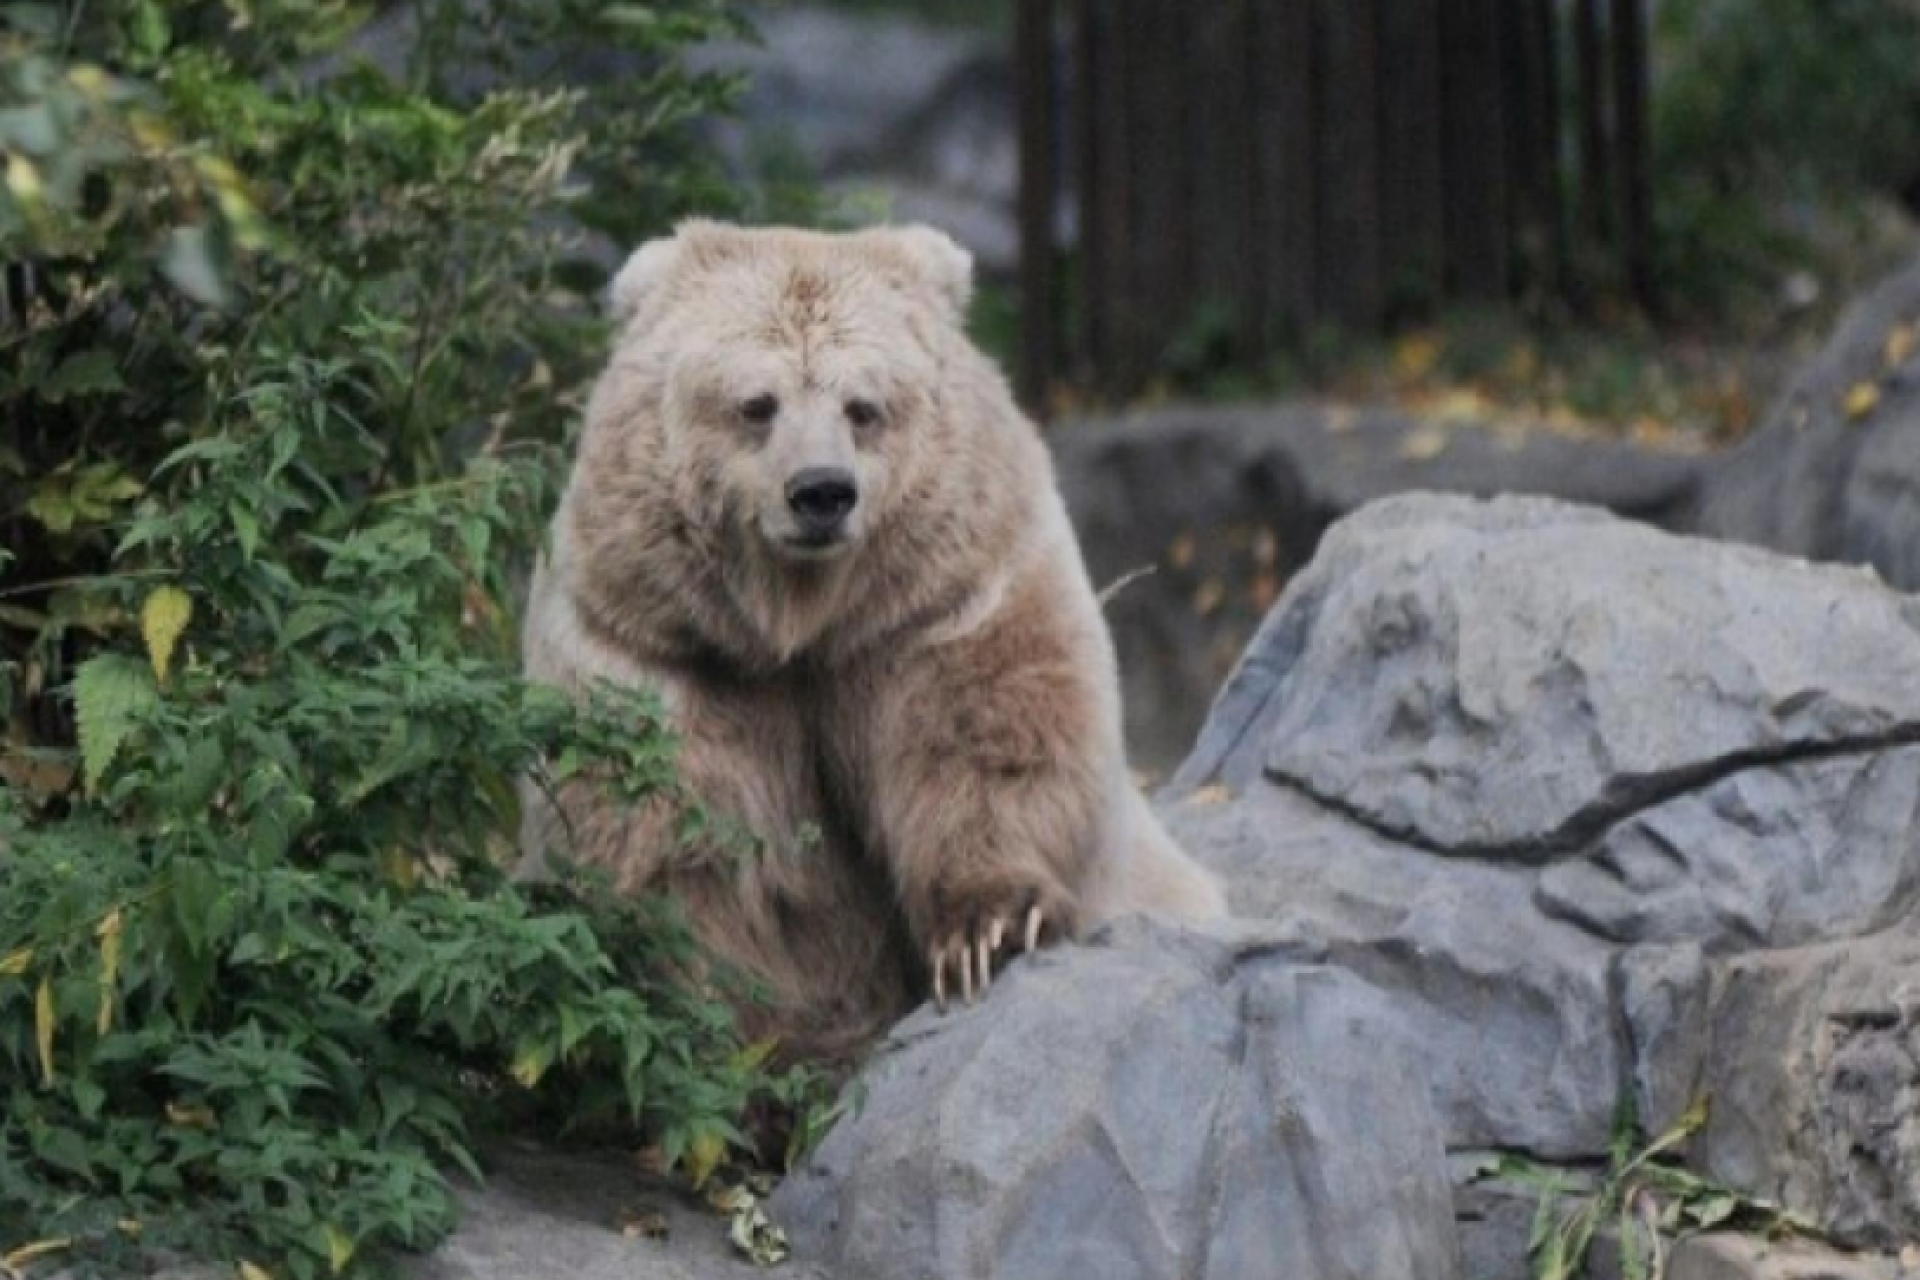 Tien-Shan bears of Kirghizia destroyed a herd of sheep and did not touch a man